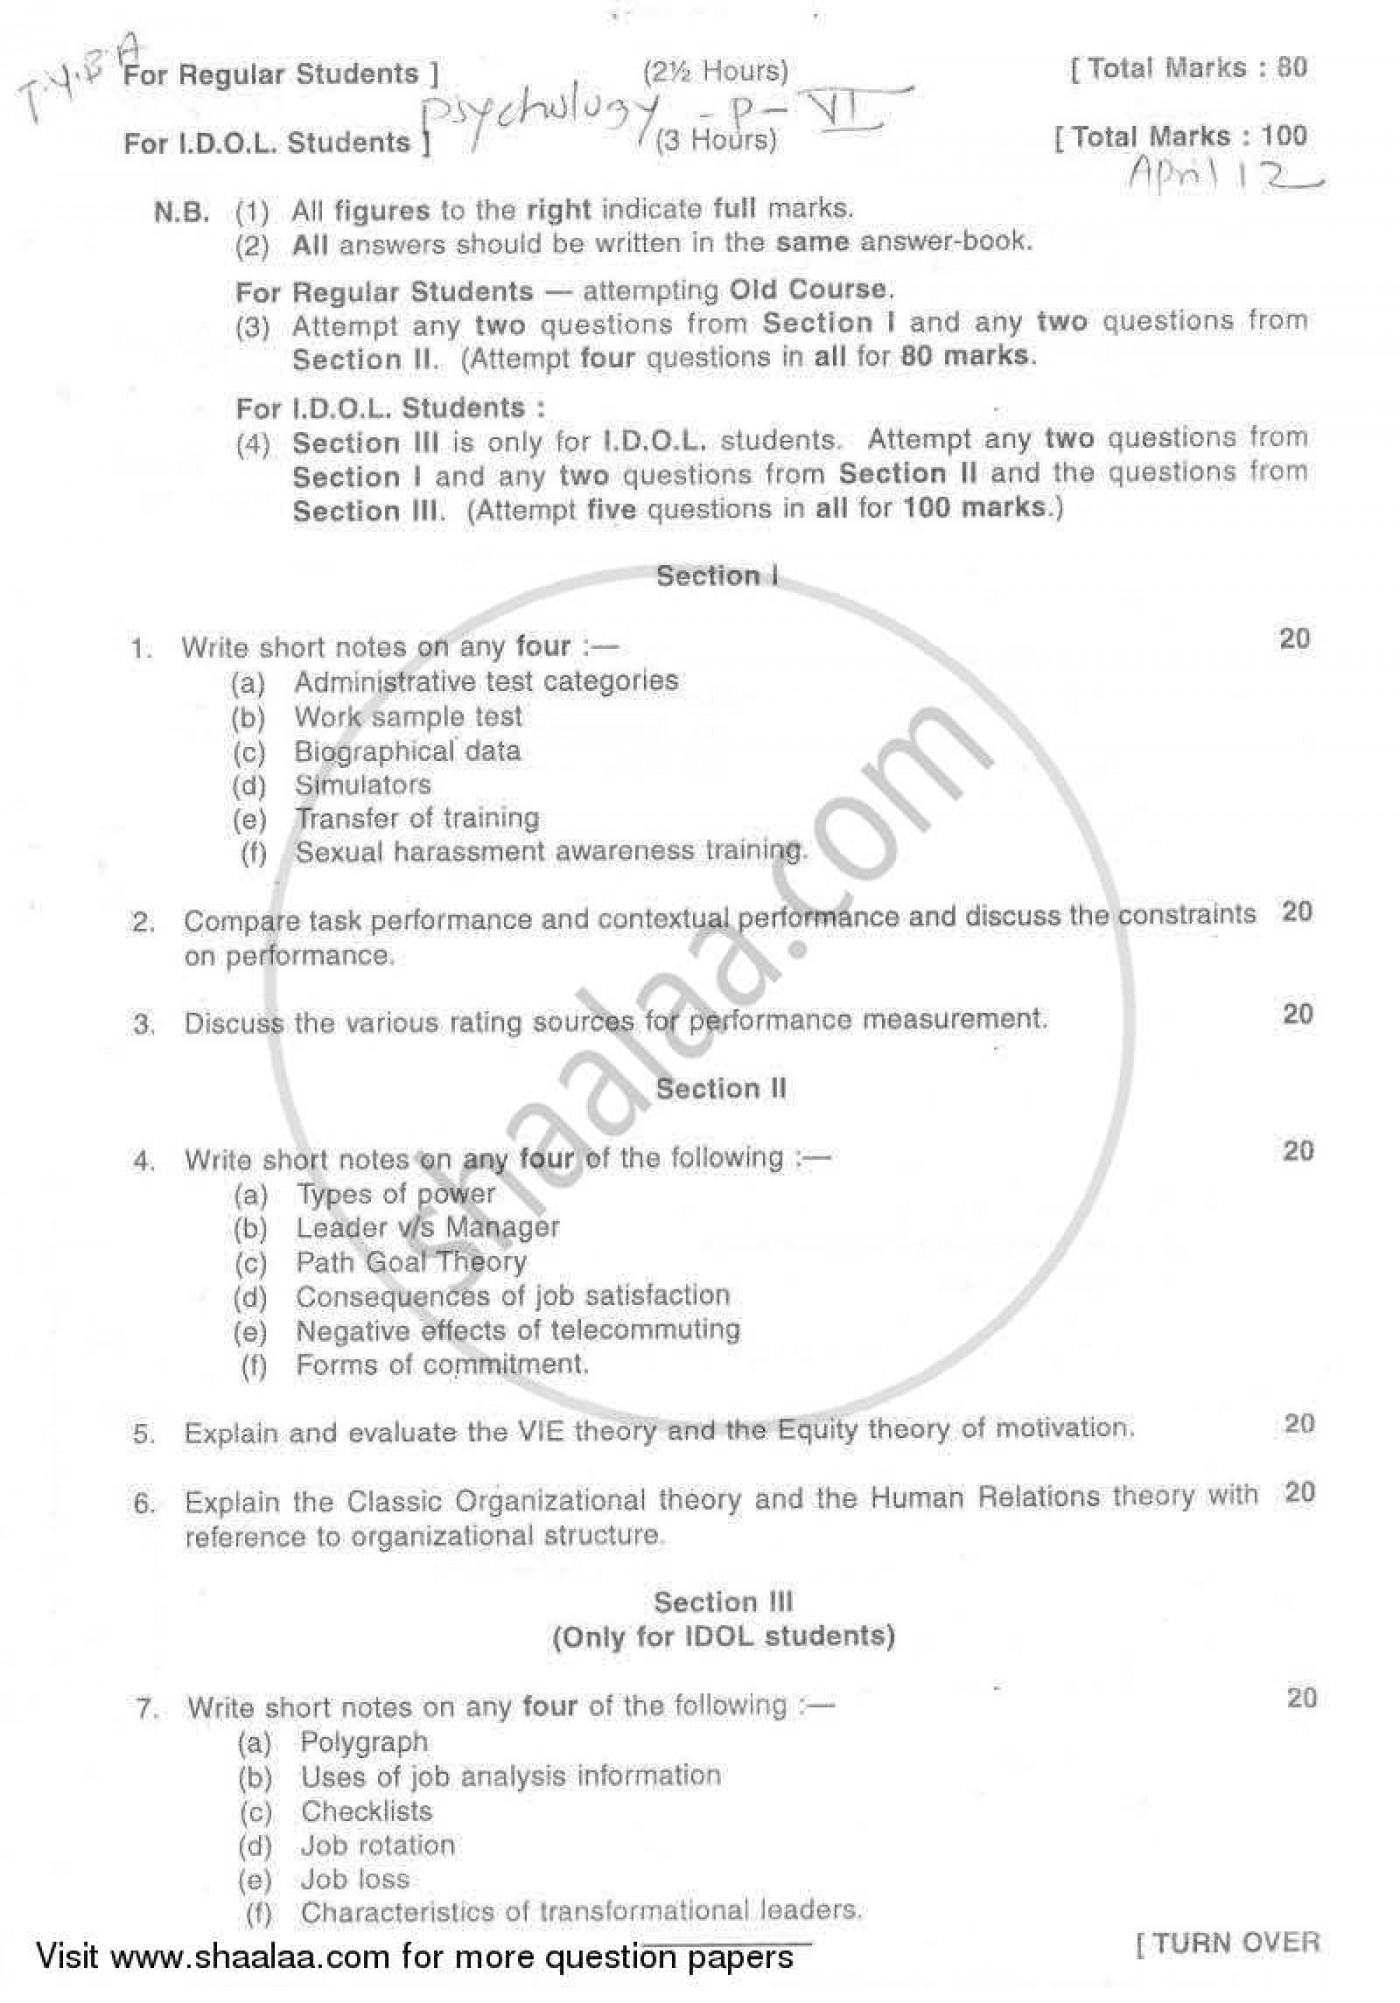 017 Psychologyearch Paper On Dreams University Of Mumbai Bachelor Industrial Organizational T Y Yearly Pattern Semester Tyba 2011 29a03925dfc524f2aa4cb10e4d3da996a Singular Psychology Research 1400